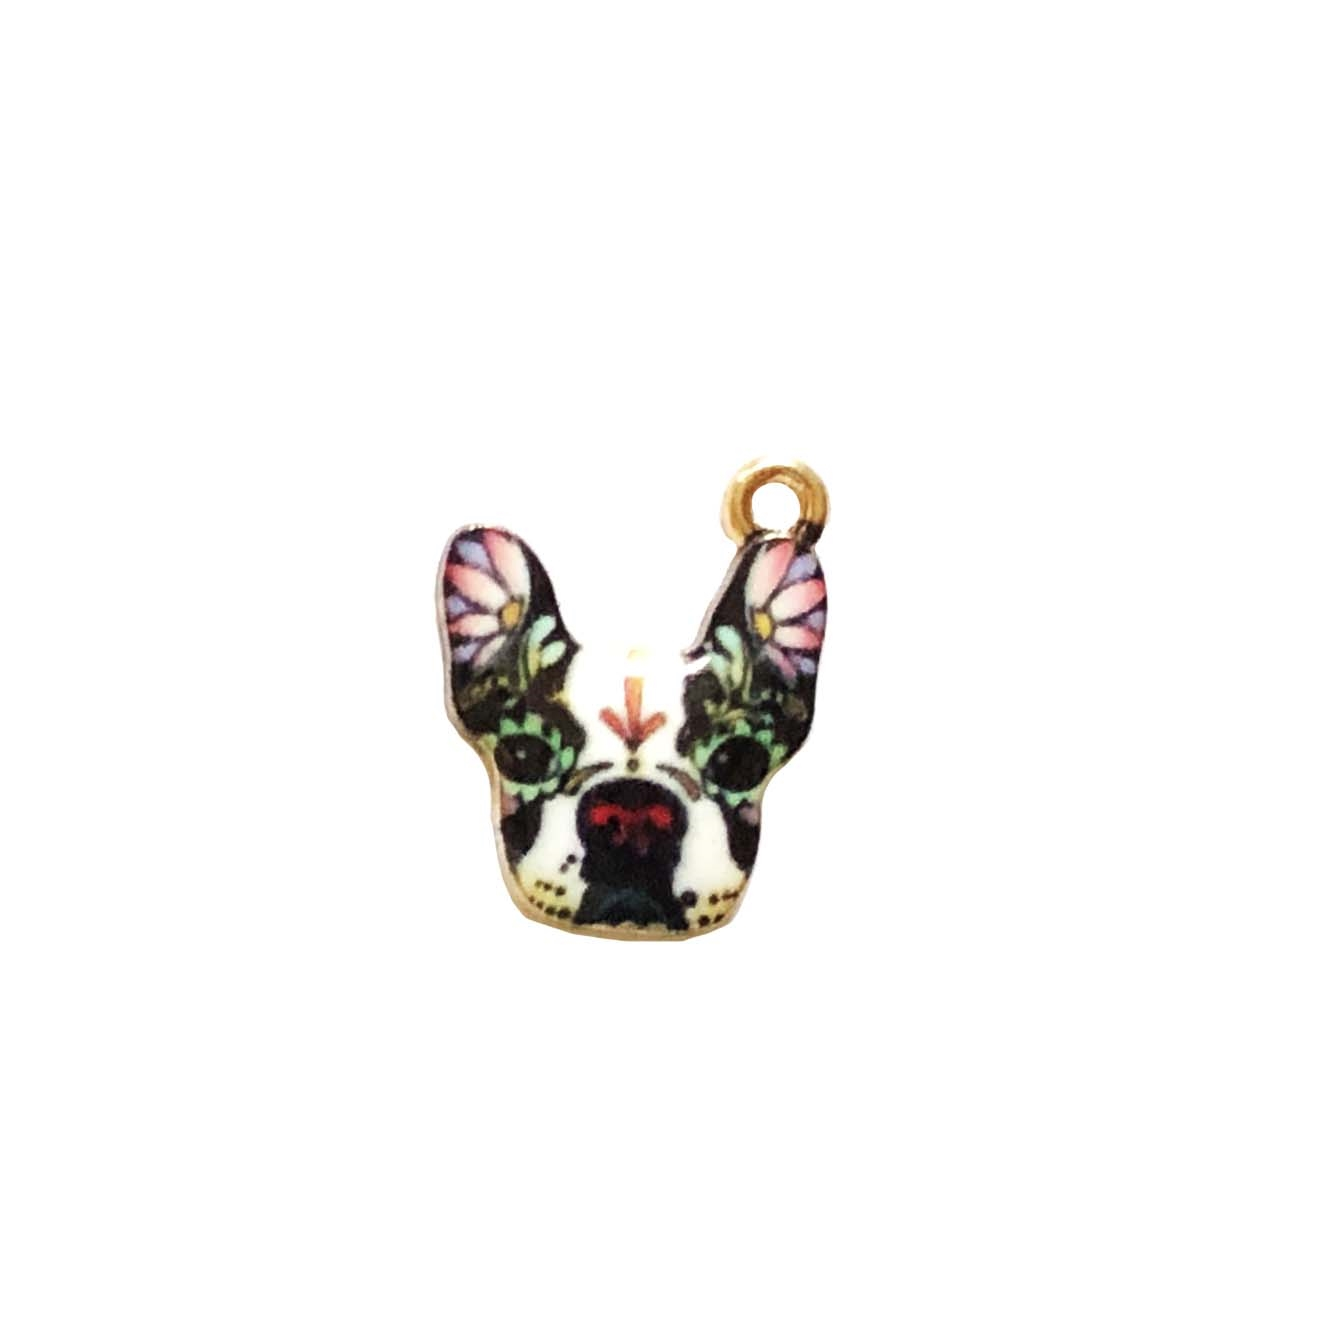 French Bull Dog Charm,  multicolored enamel, charm, pendant, 21 x 13mm, B'sue Boutiques, jewelry making, vintage supplies, jewelry supplies, jewelry findings, 0277,  gold plate, bull dog pendants,